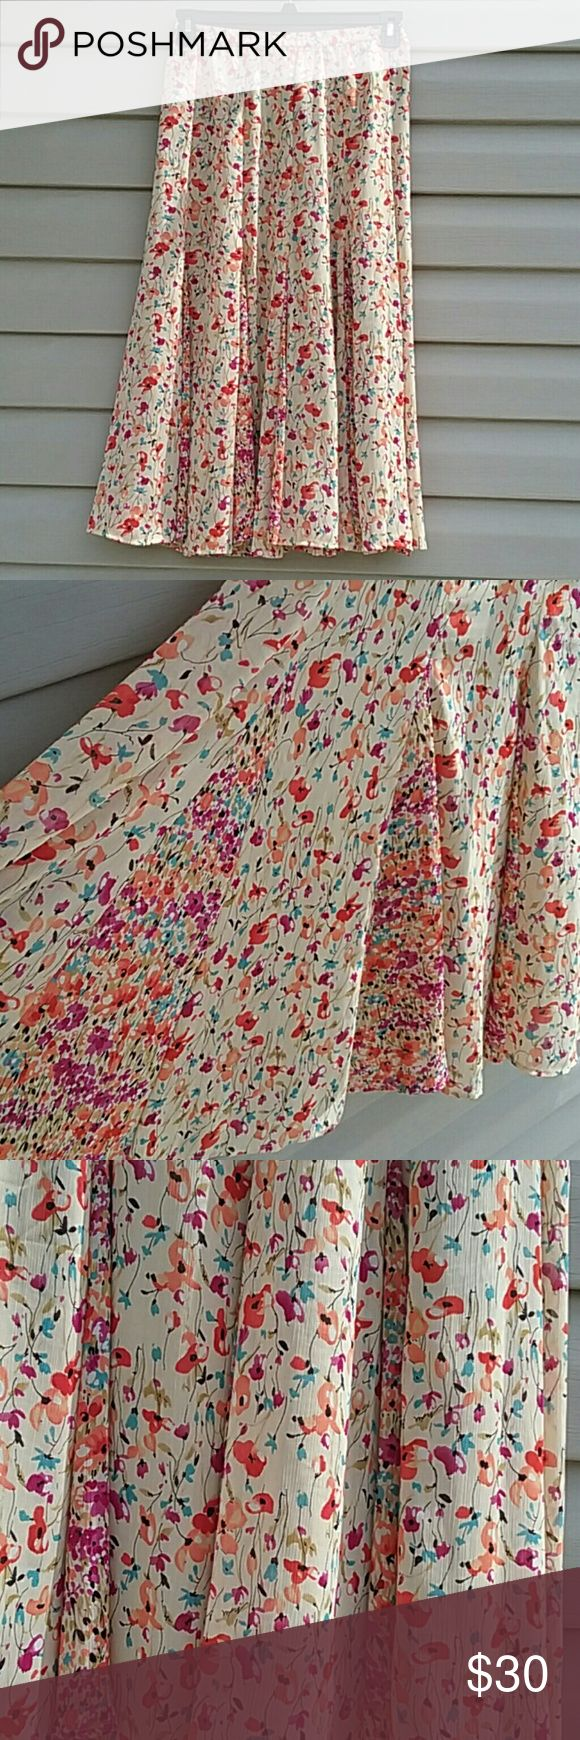 Coldwater Creek maxi skirt NWOT Coldwater Creek flowy maxi skirt stretchy waist, beautiful cream color with red, Orange,  purple, tan, and  Blue flowers never worn size XS petite Waist is26 in. Length is 31 in. Coldwater Creek Skirts Maxi